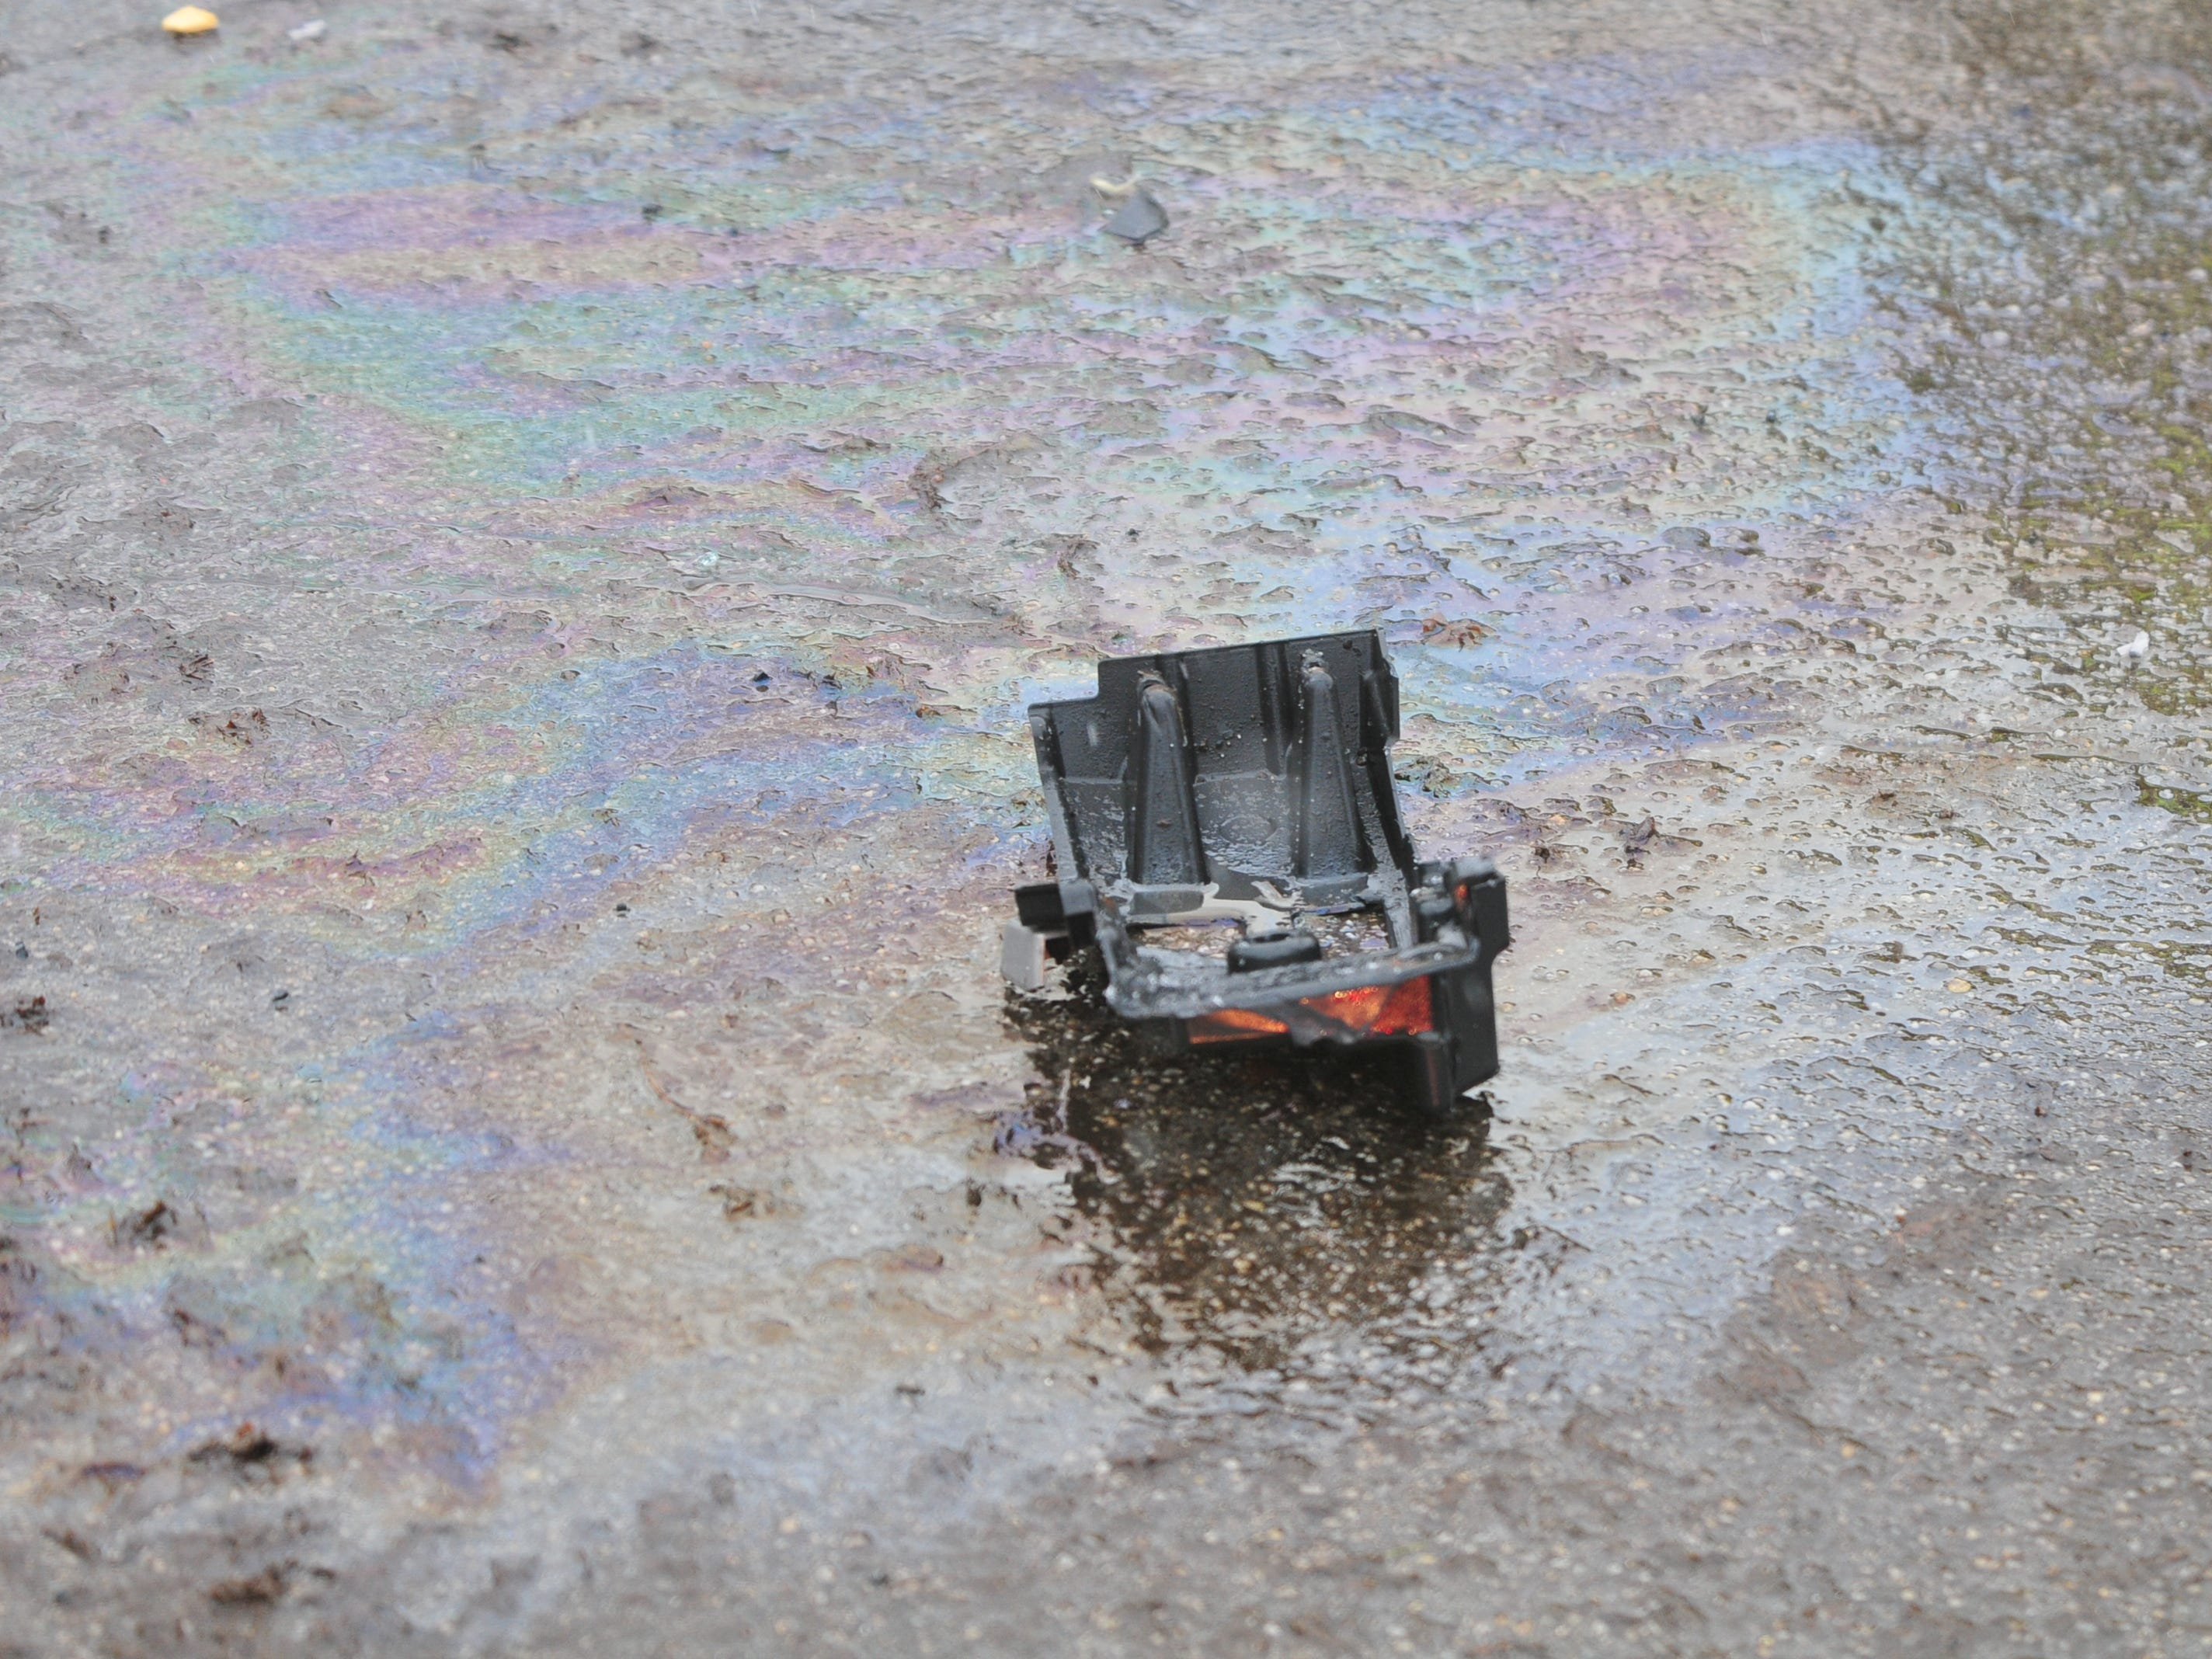 Debris from an accident sits in a colorful pattern made by fluids on the wet roadway Thursday on Richmond Avenue.